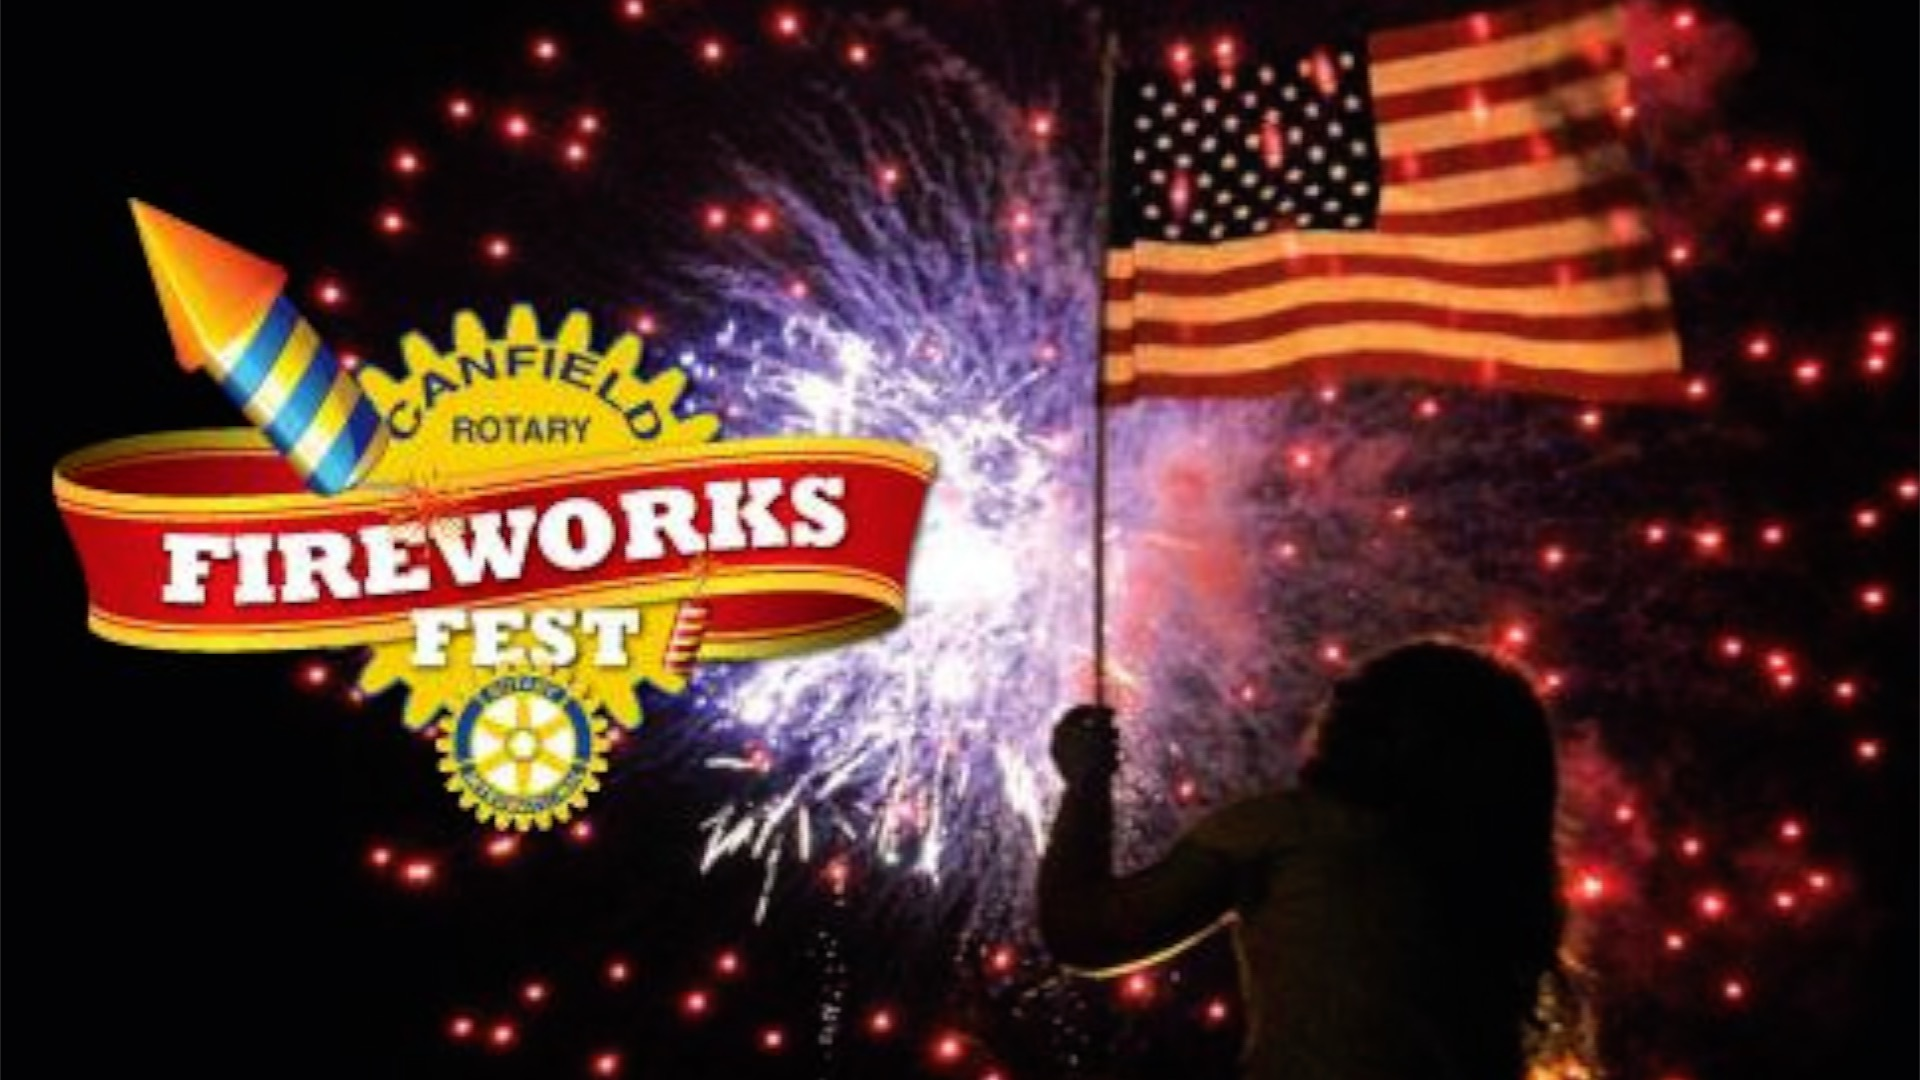 The Canfield Fireworks Fest Returns